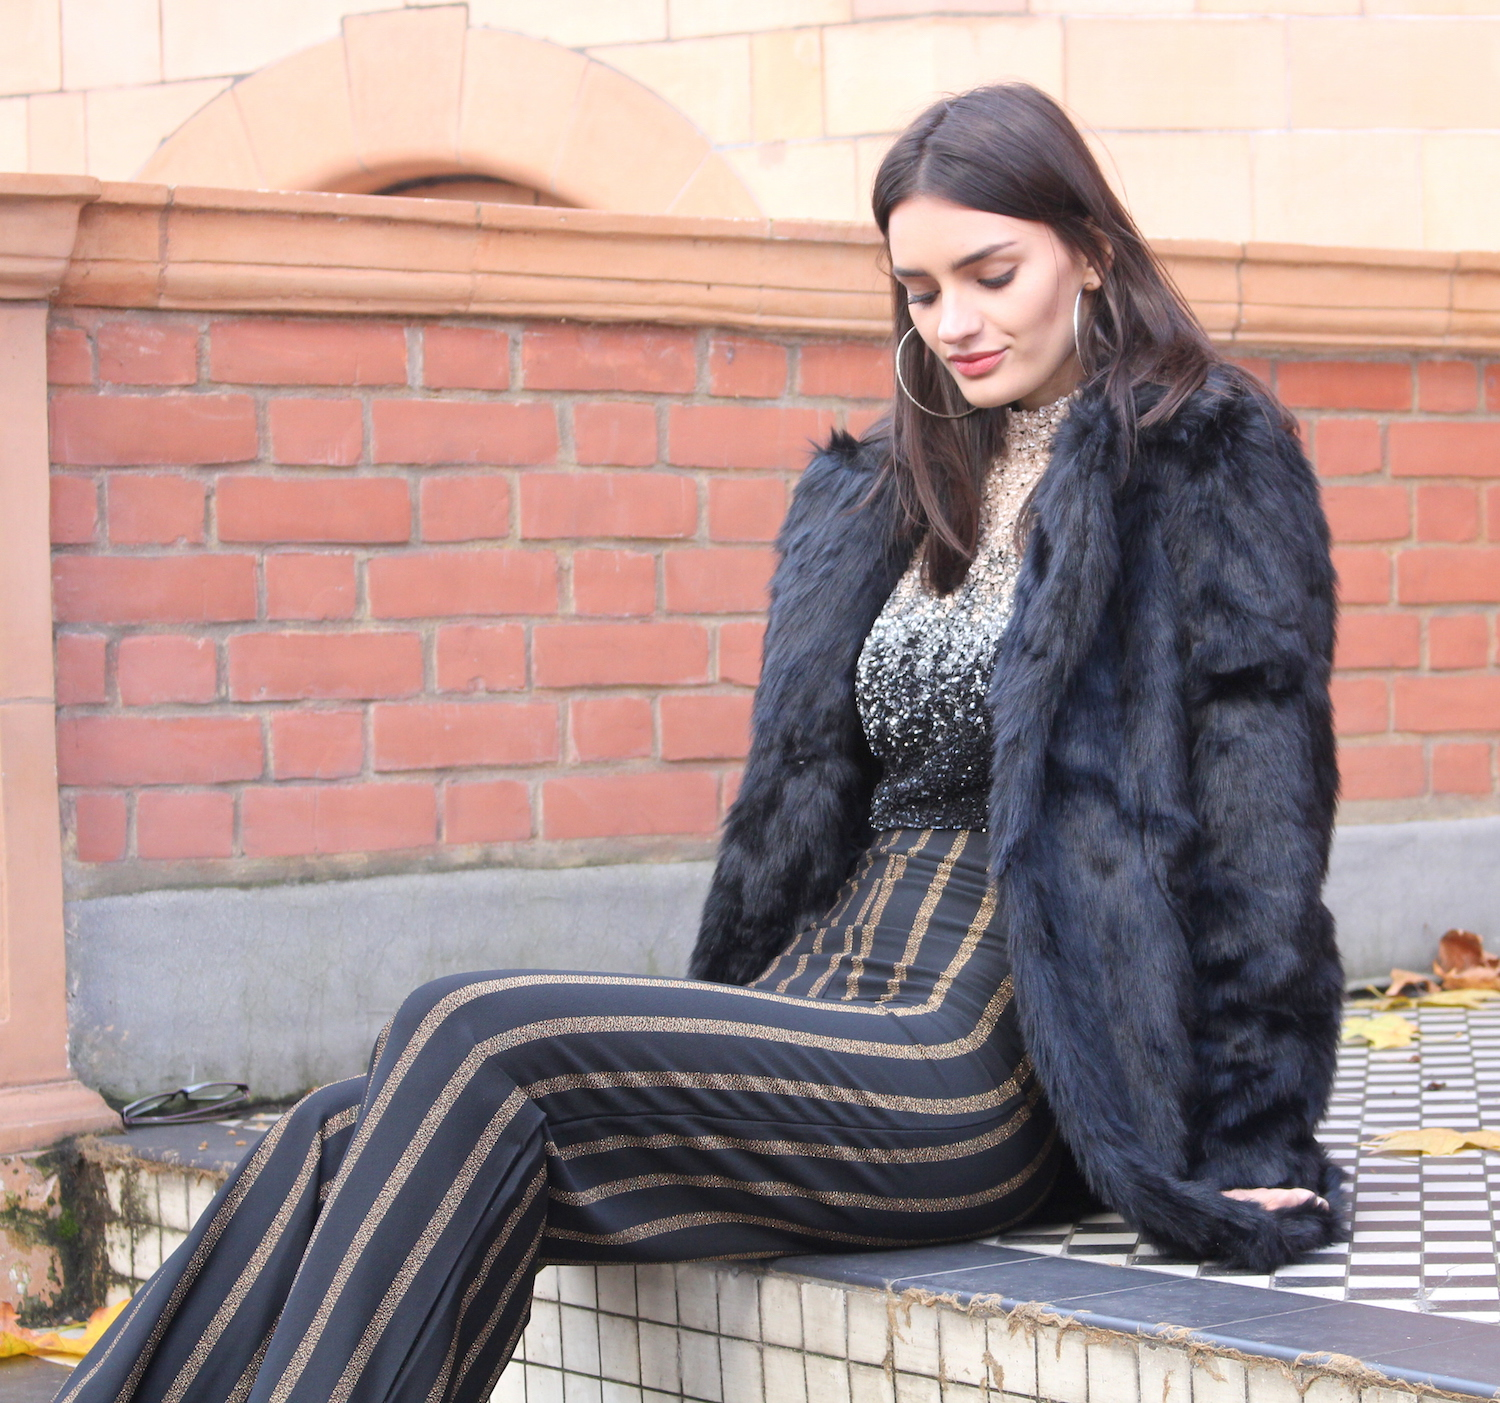 peexo fashion blogger wearing sequins for nye